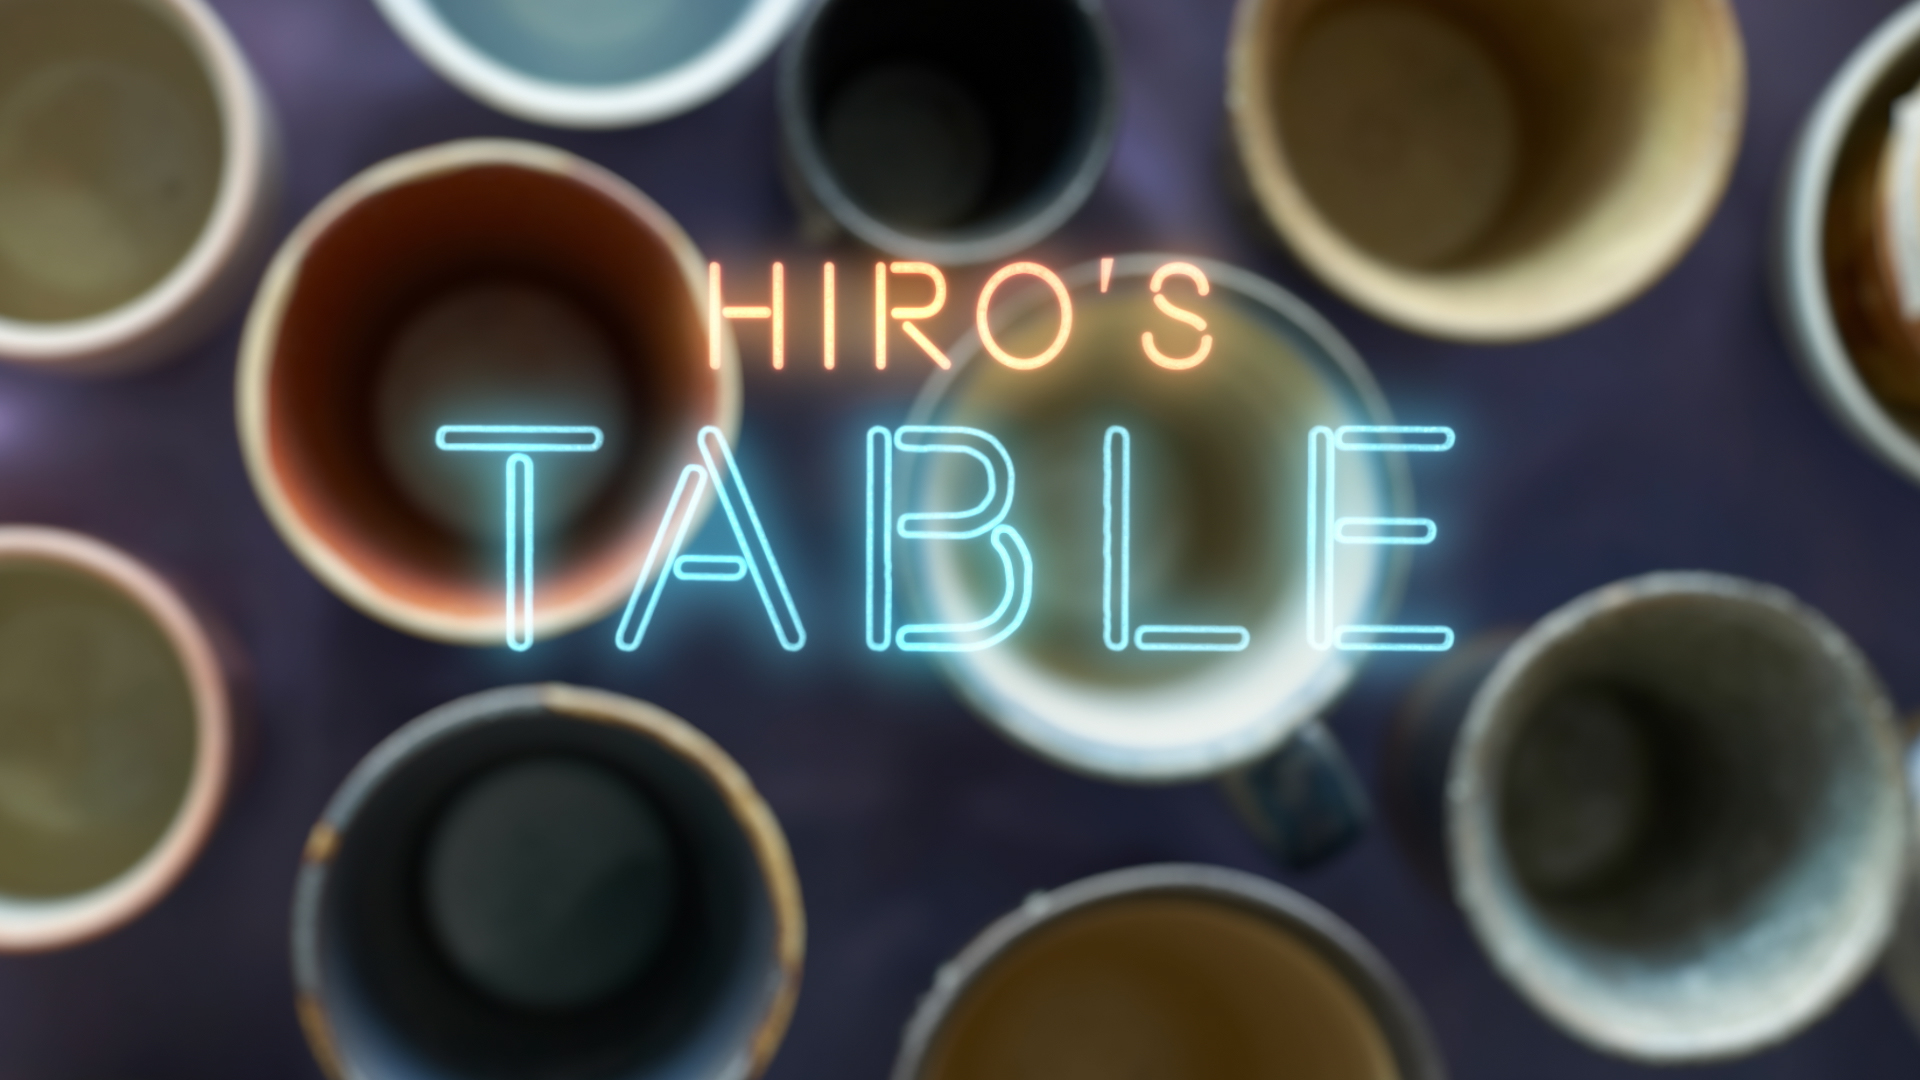 Hiros Table hd on soap2day